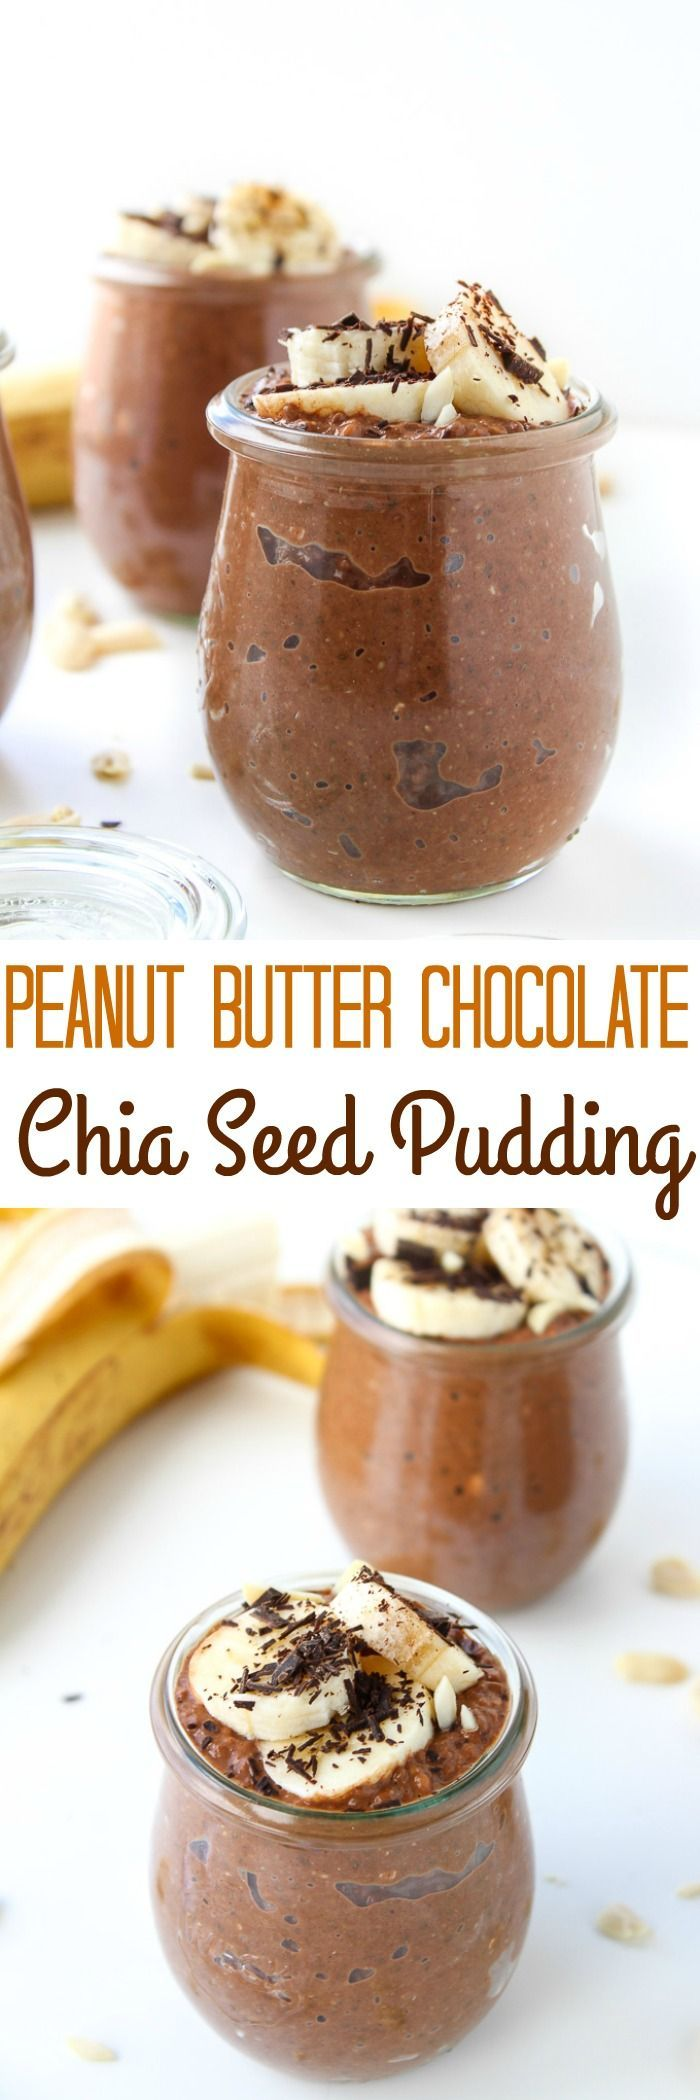 Peanut Butter Chocolate Chia Seed Pudding Gluten free & Vegan (Paleo Baking Powder)